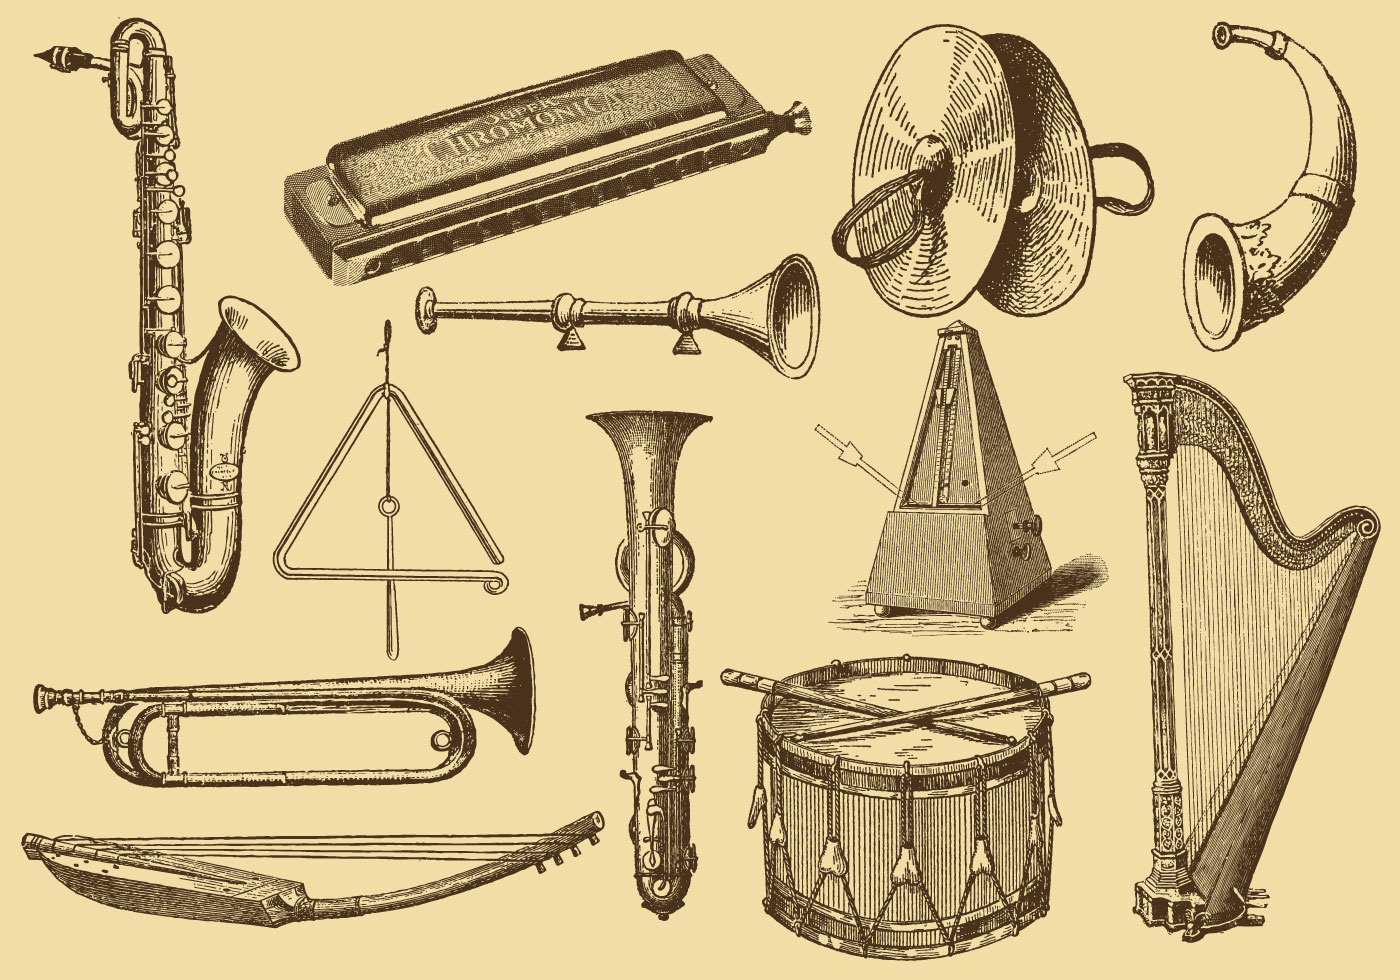 This is an image of Inventive Musical Instruments Drawing